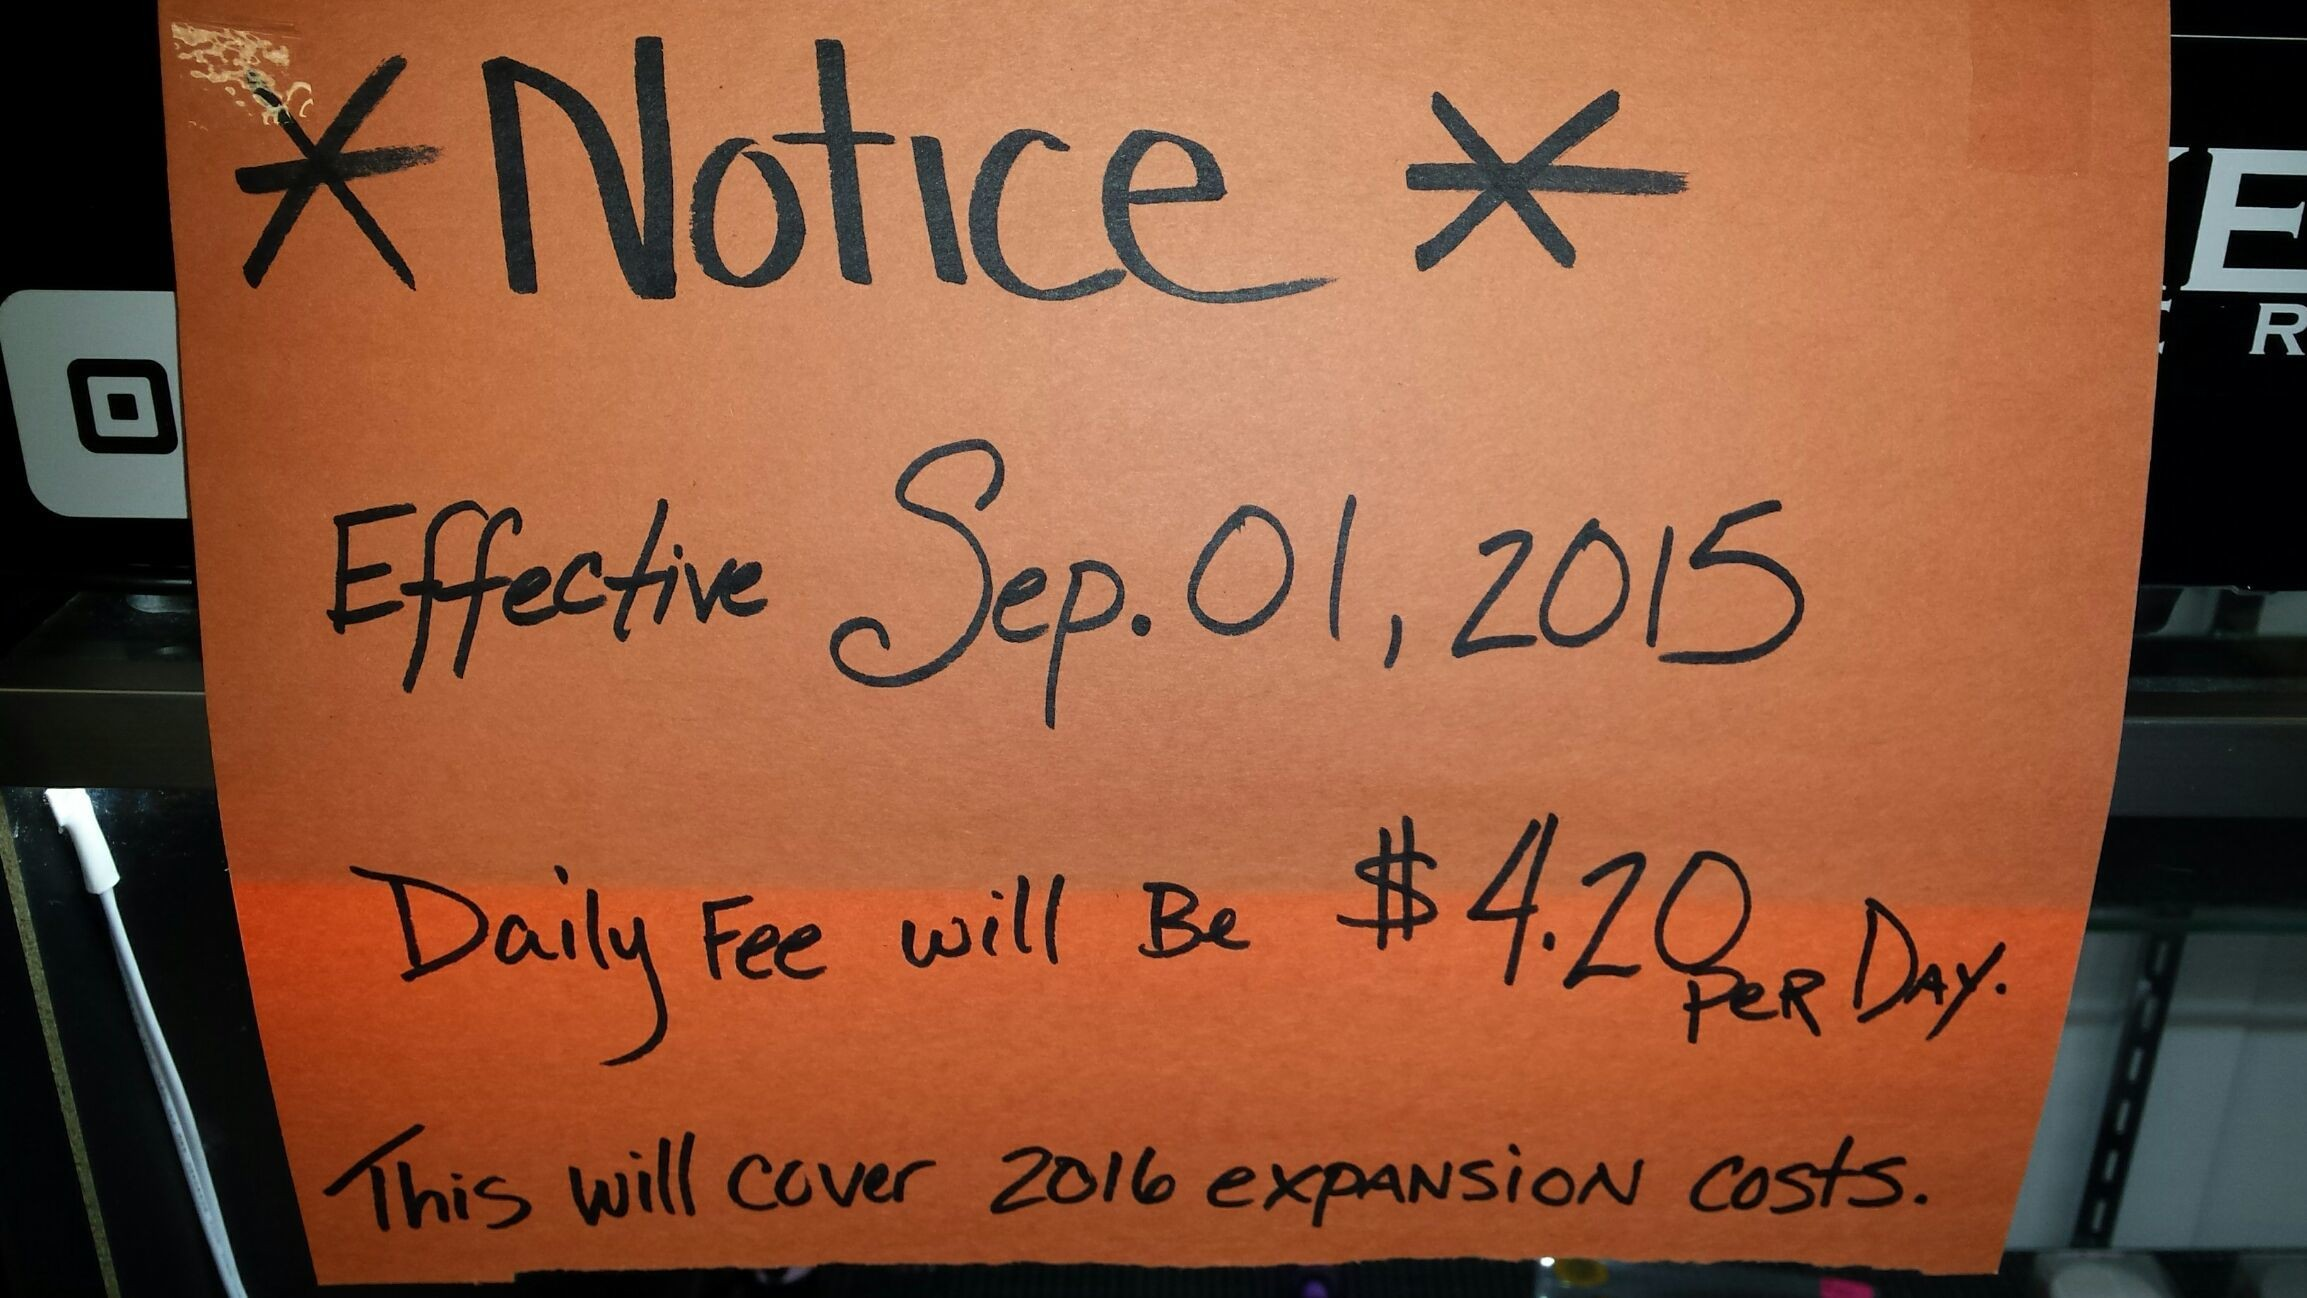 To cover 2016 expansion costs, effective September 1st, 2015 the #iBakeDenver daily fee will be $4.20. Thank you for being part of #iBakeFamily and helping the #iBakeEmpire grow!